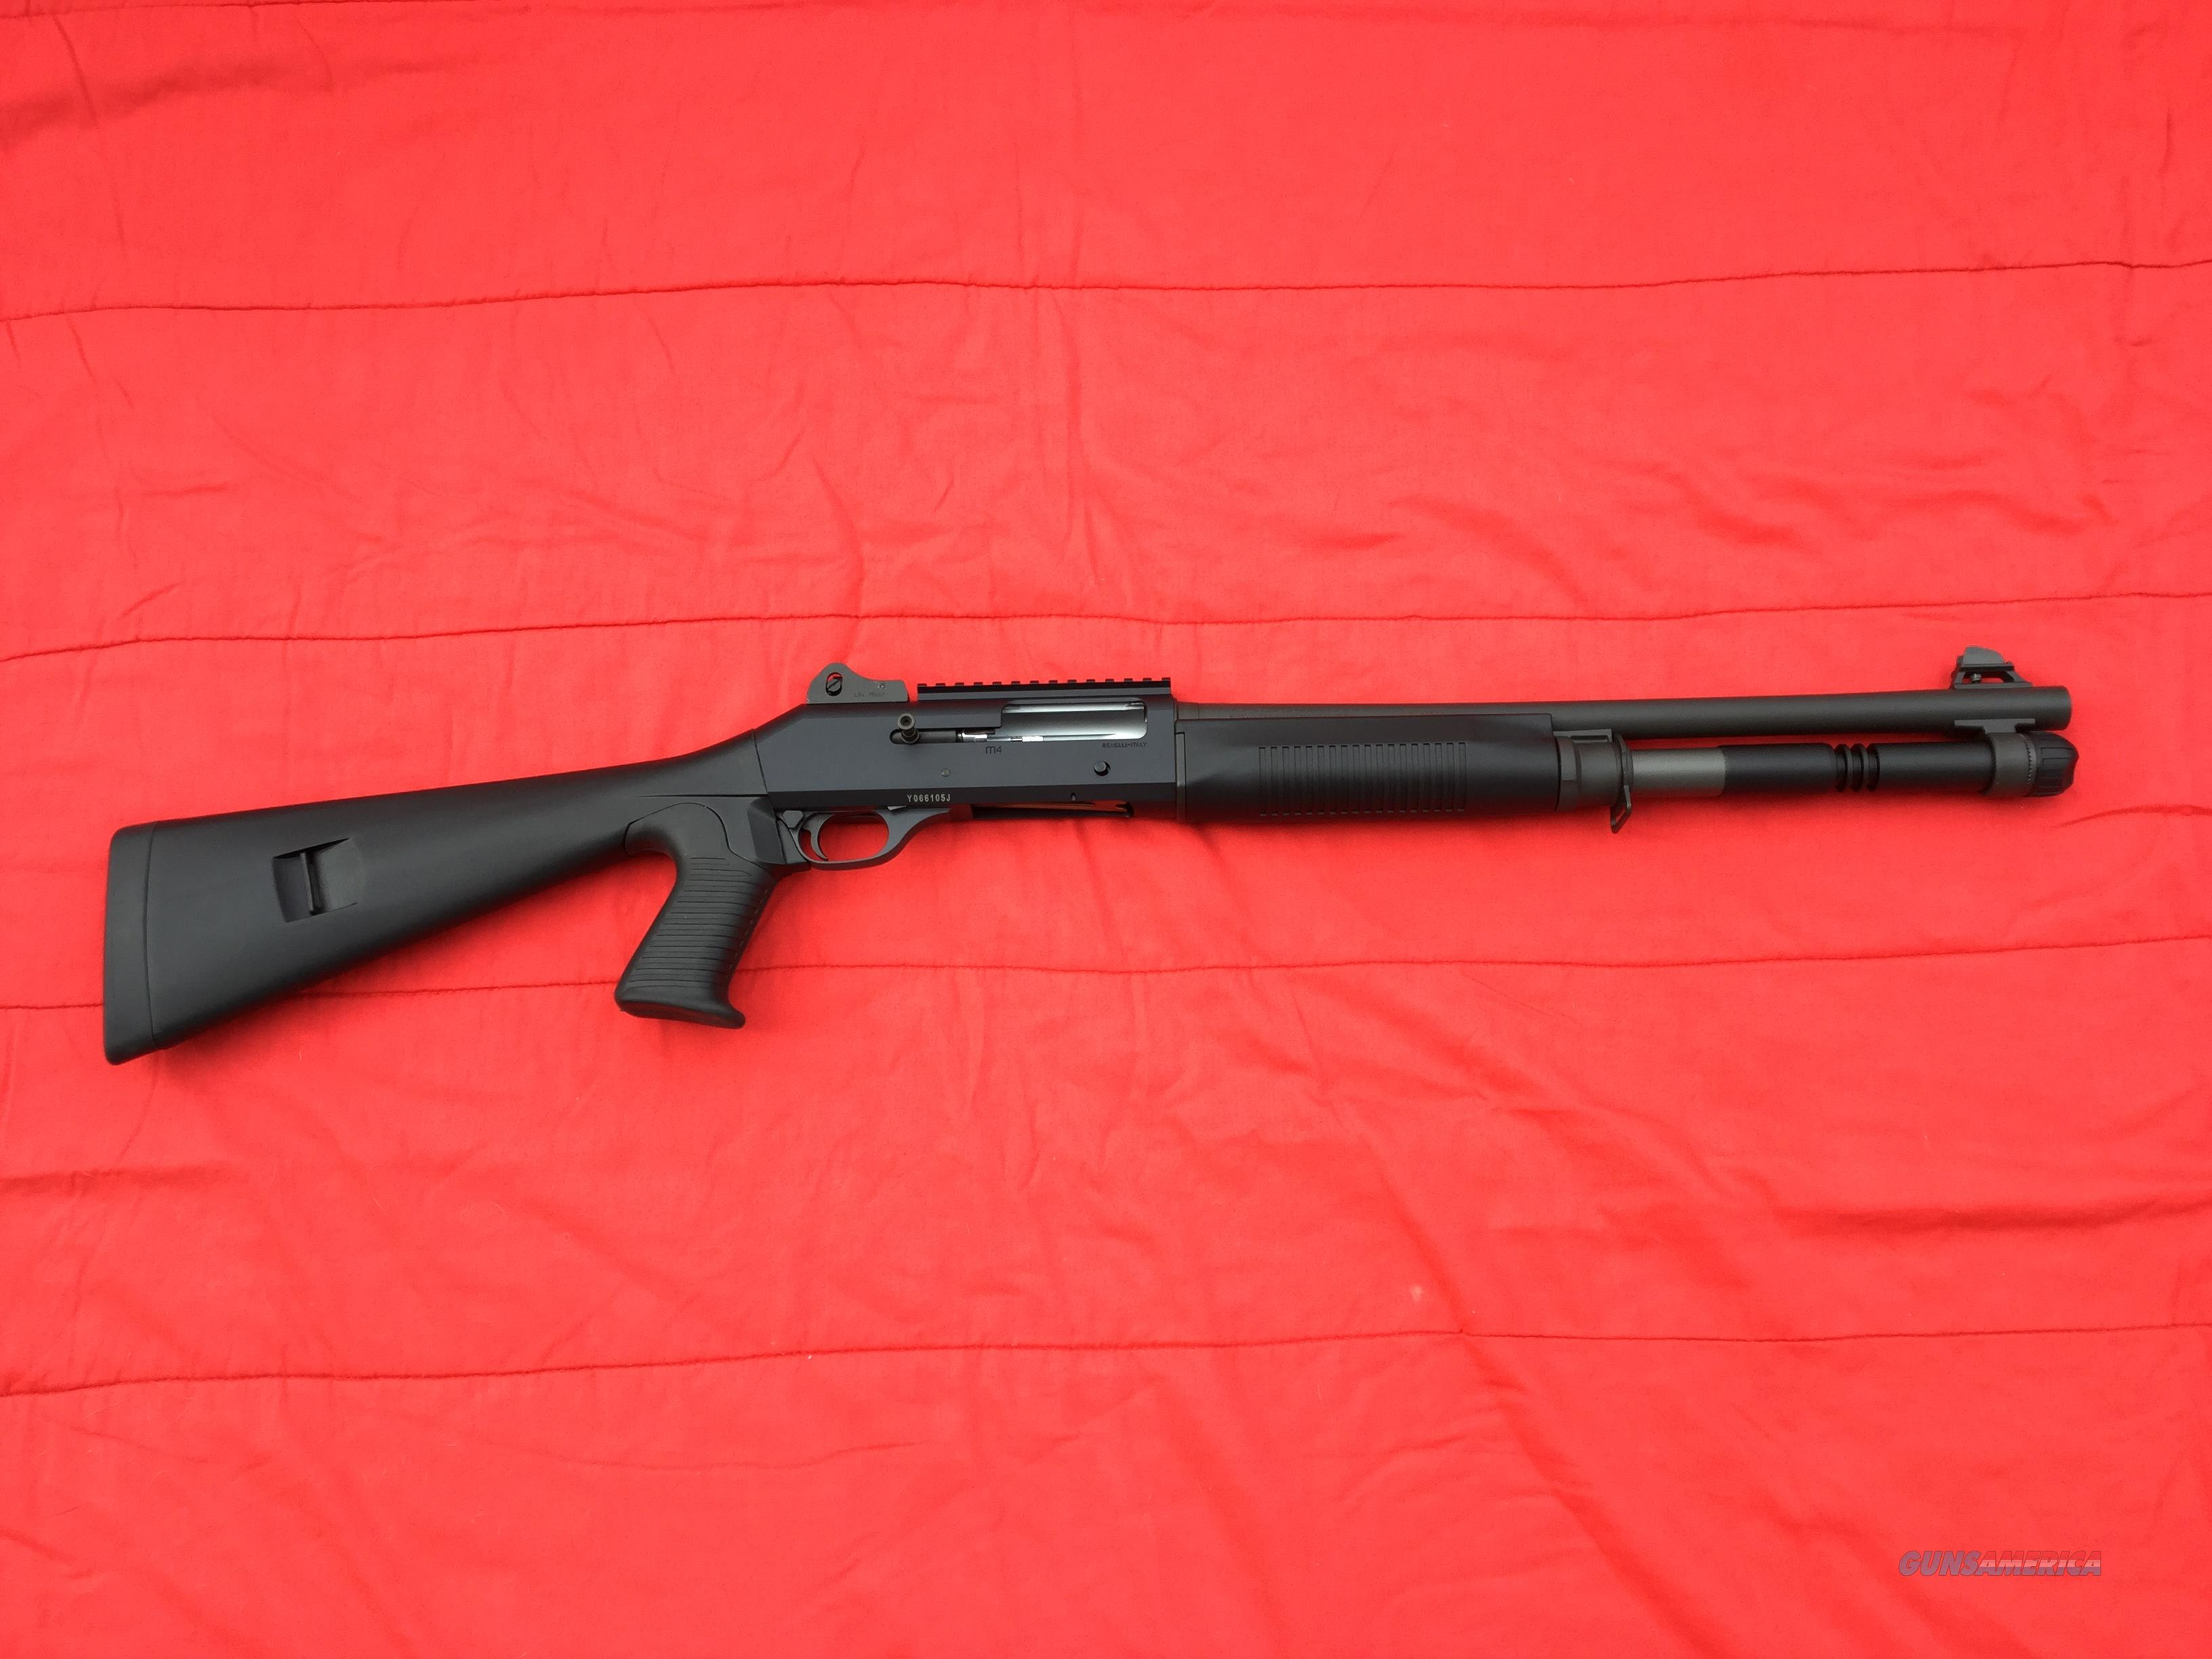 Benelli M4 Tactical, Model 11707, Like New, Never Fired, incl 7 rnd